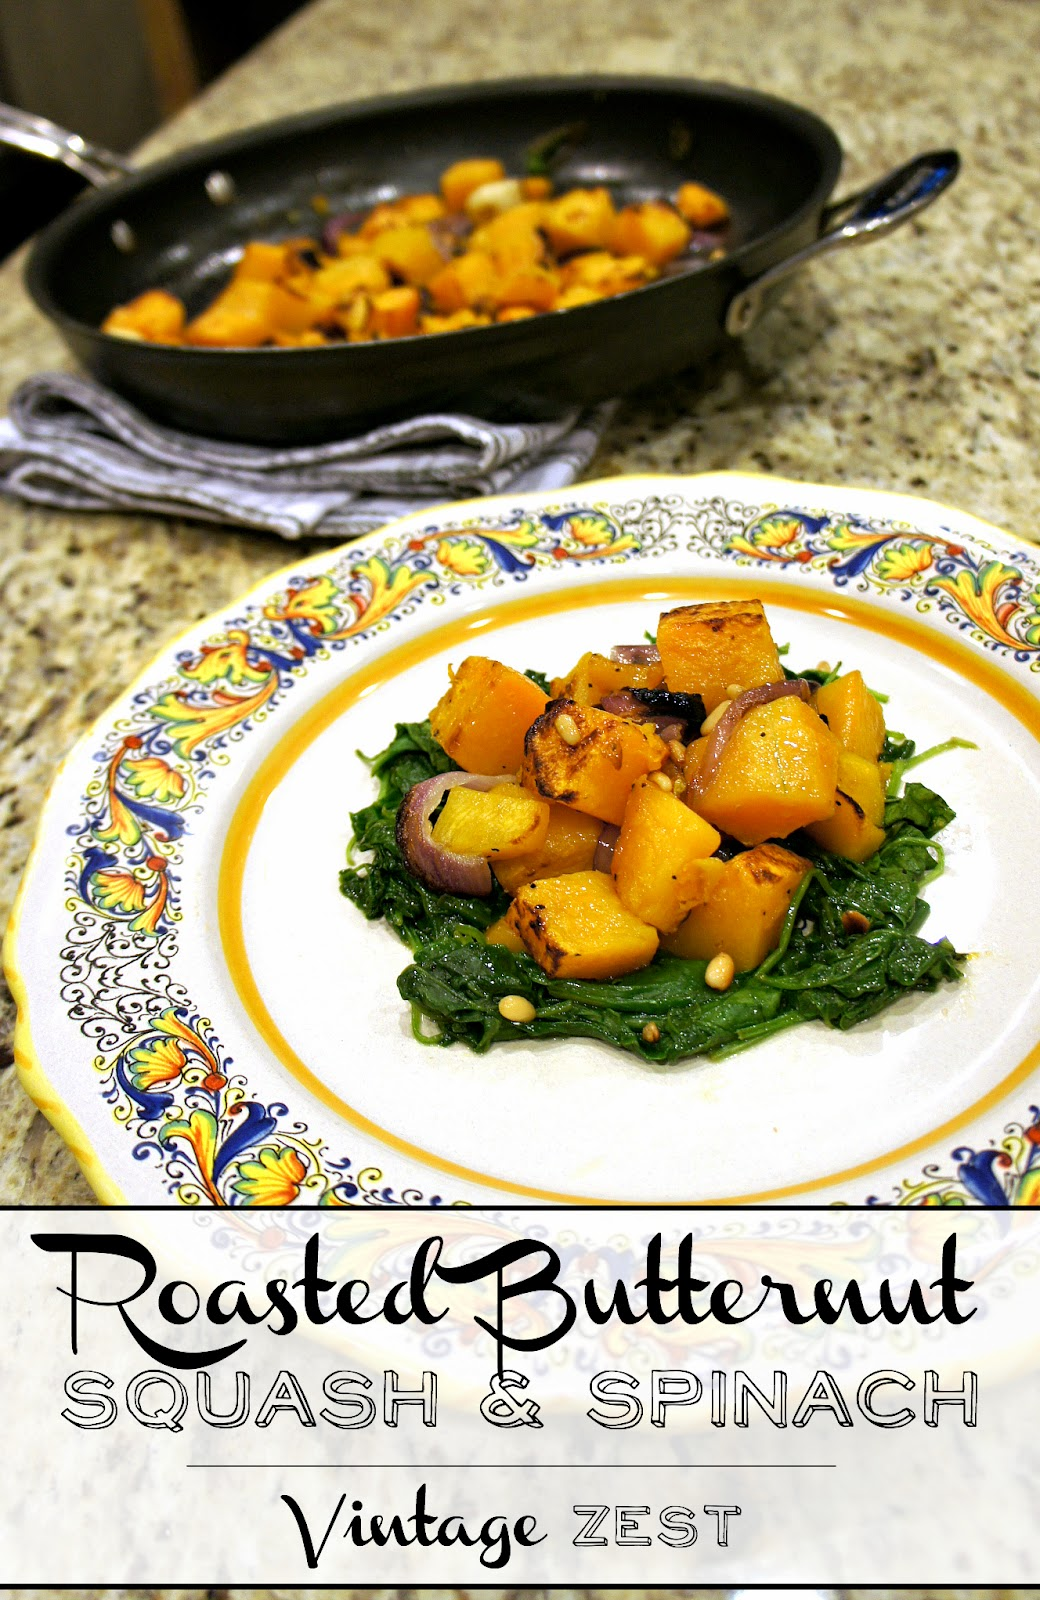 Roasted Butternut Squash & Spinach on Diane's Vintage Zest!  #recipe #healthy #vegetarian #vegan